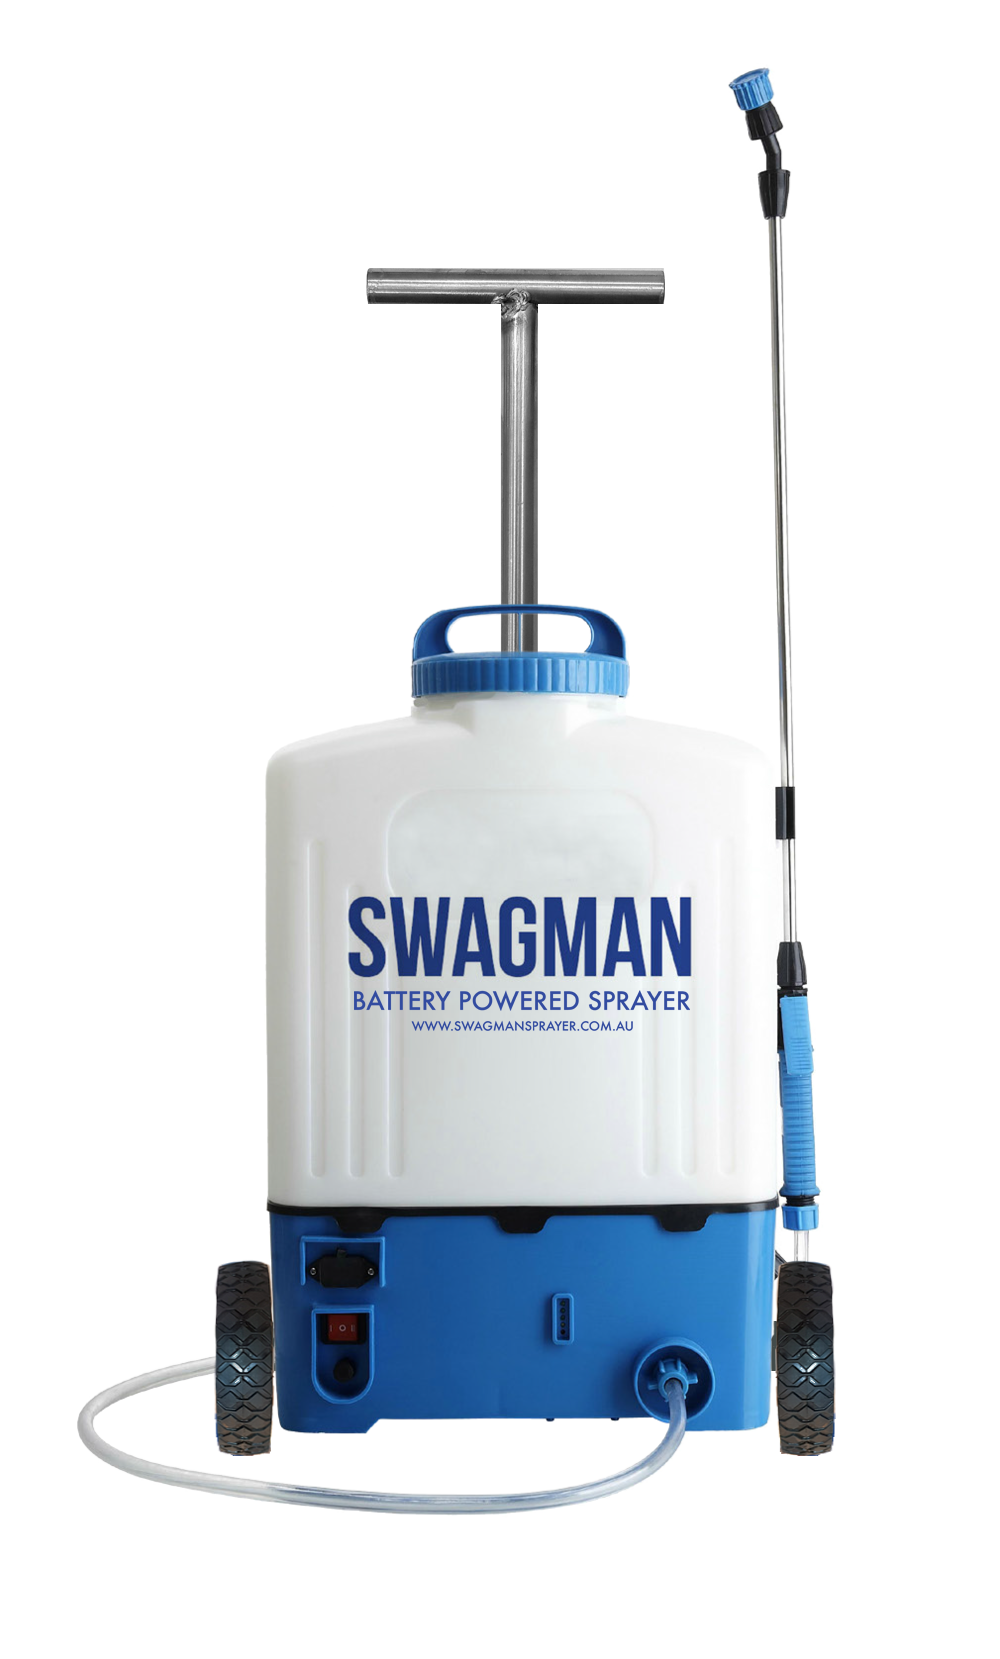 Swagman Sprayer - 16ltr No Wheels copy.png